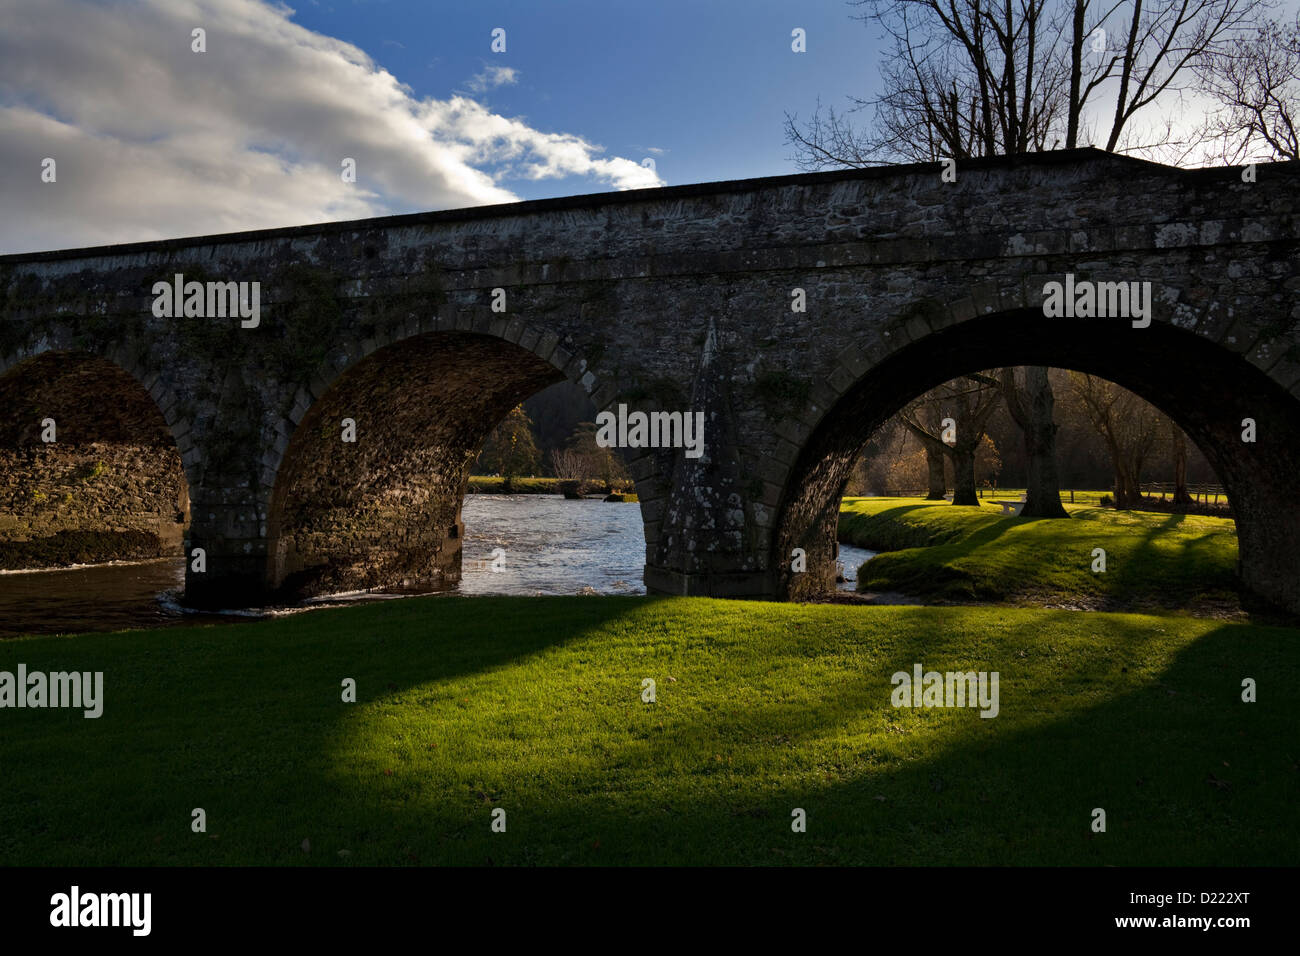 The Bridge over the River Nore, Inistioge, County Kilkenny, Ireland - Stock Image